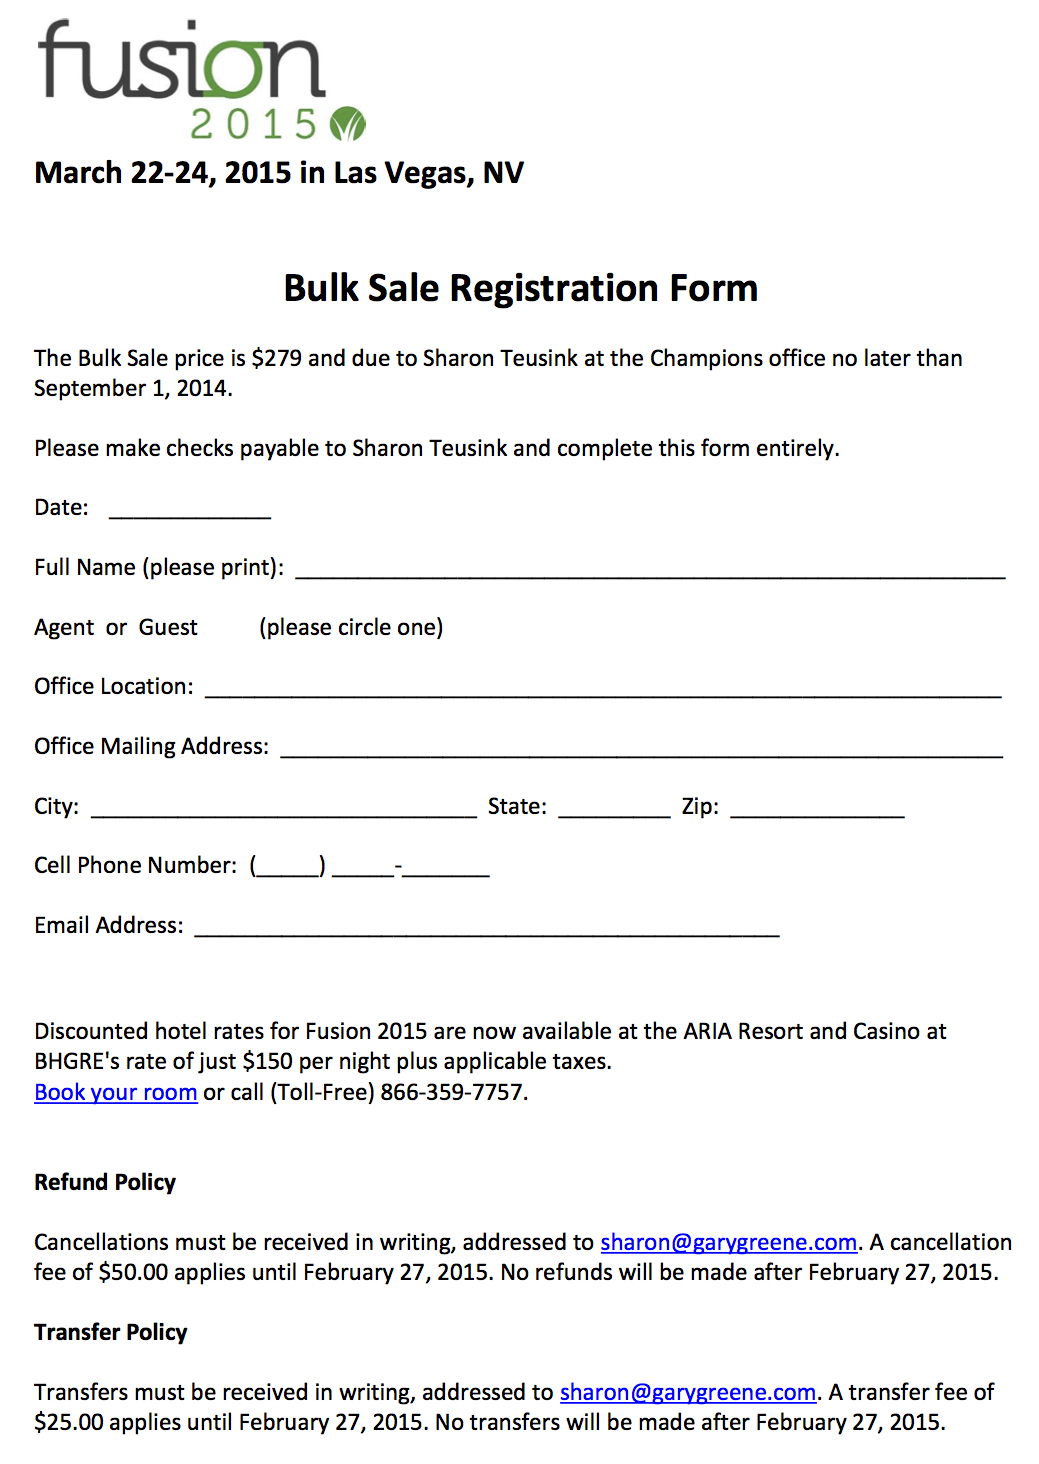 Fusion 2015 Registration Form